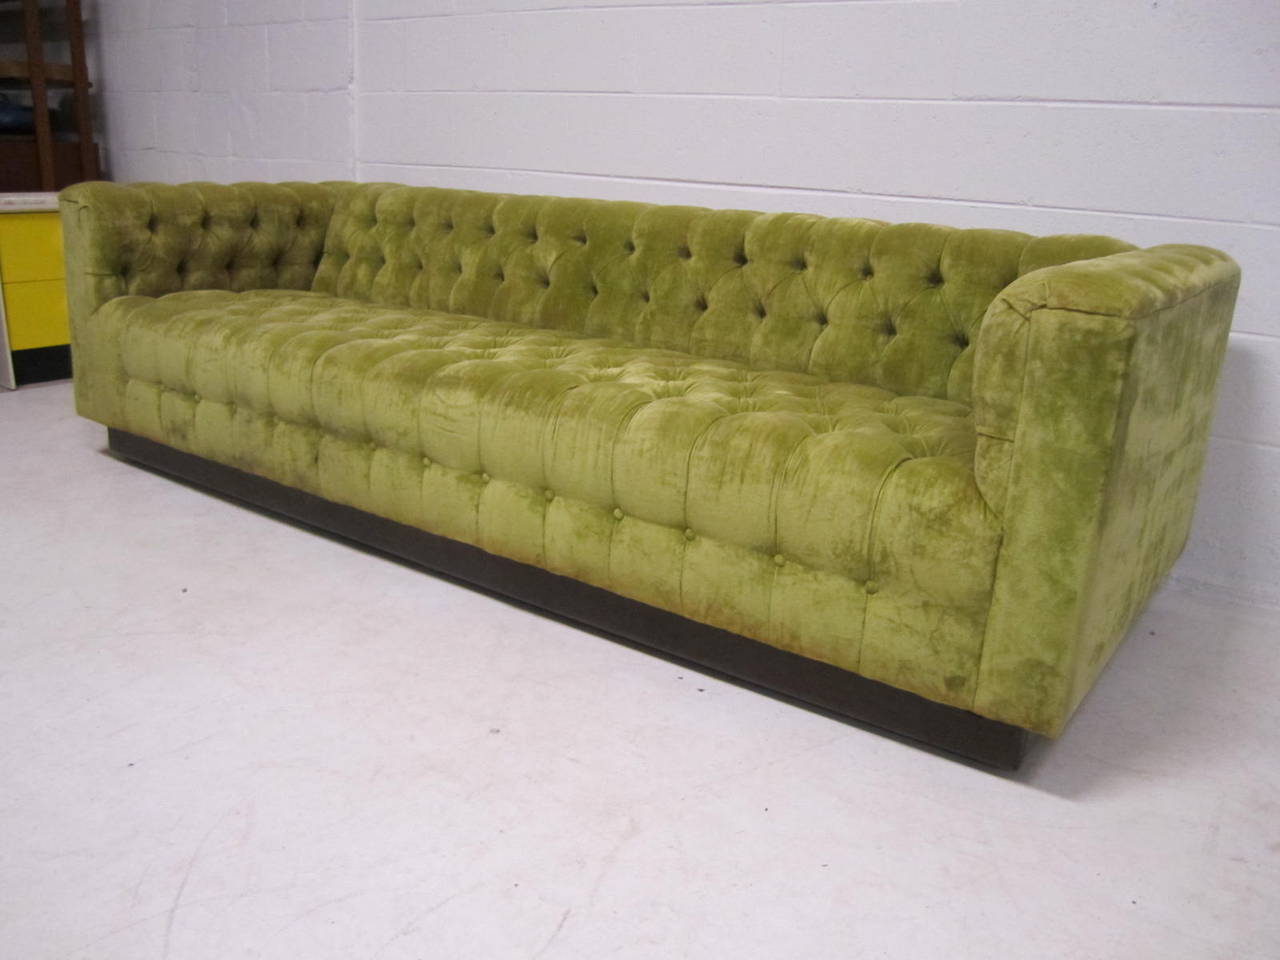 Awesome Dunbar Style Chesterfield Tufted Sofa Mid Century Modern At